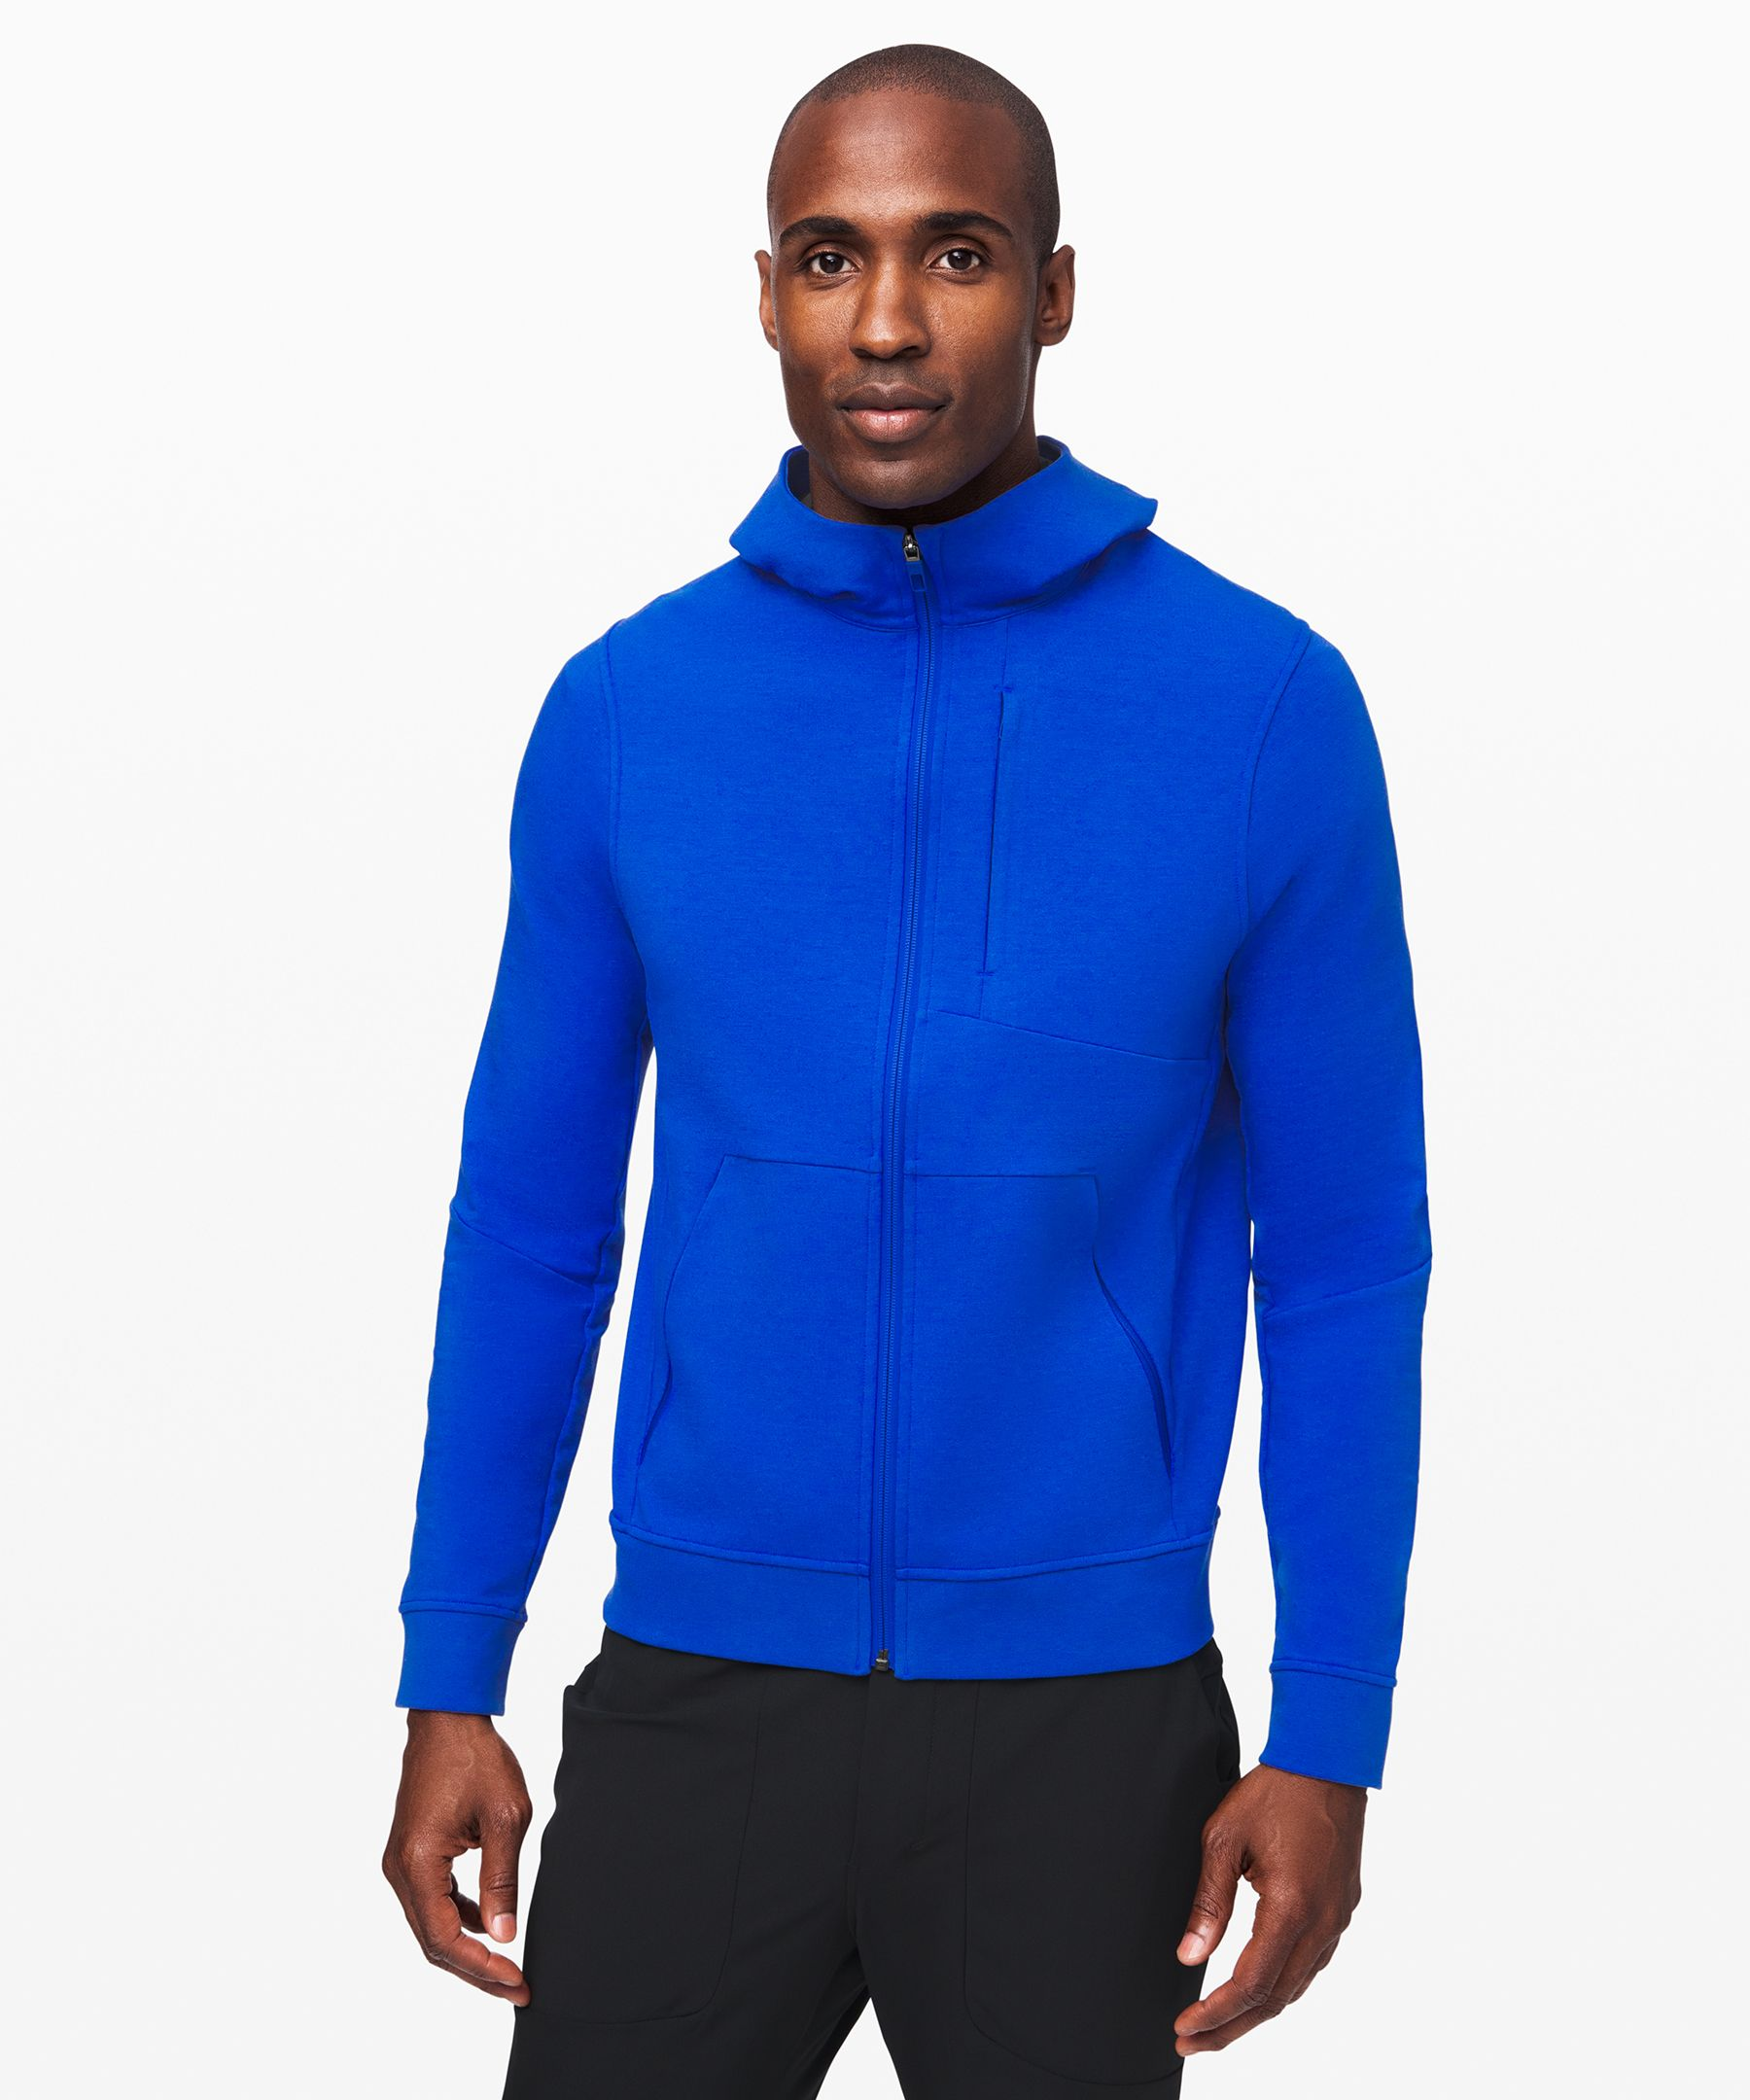 Everyone needs a good hoodie.  Soft, breathable fabric makes  this one just that much better.